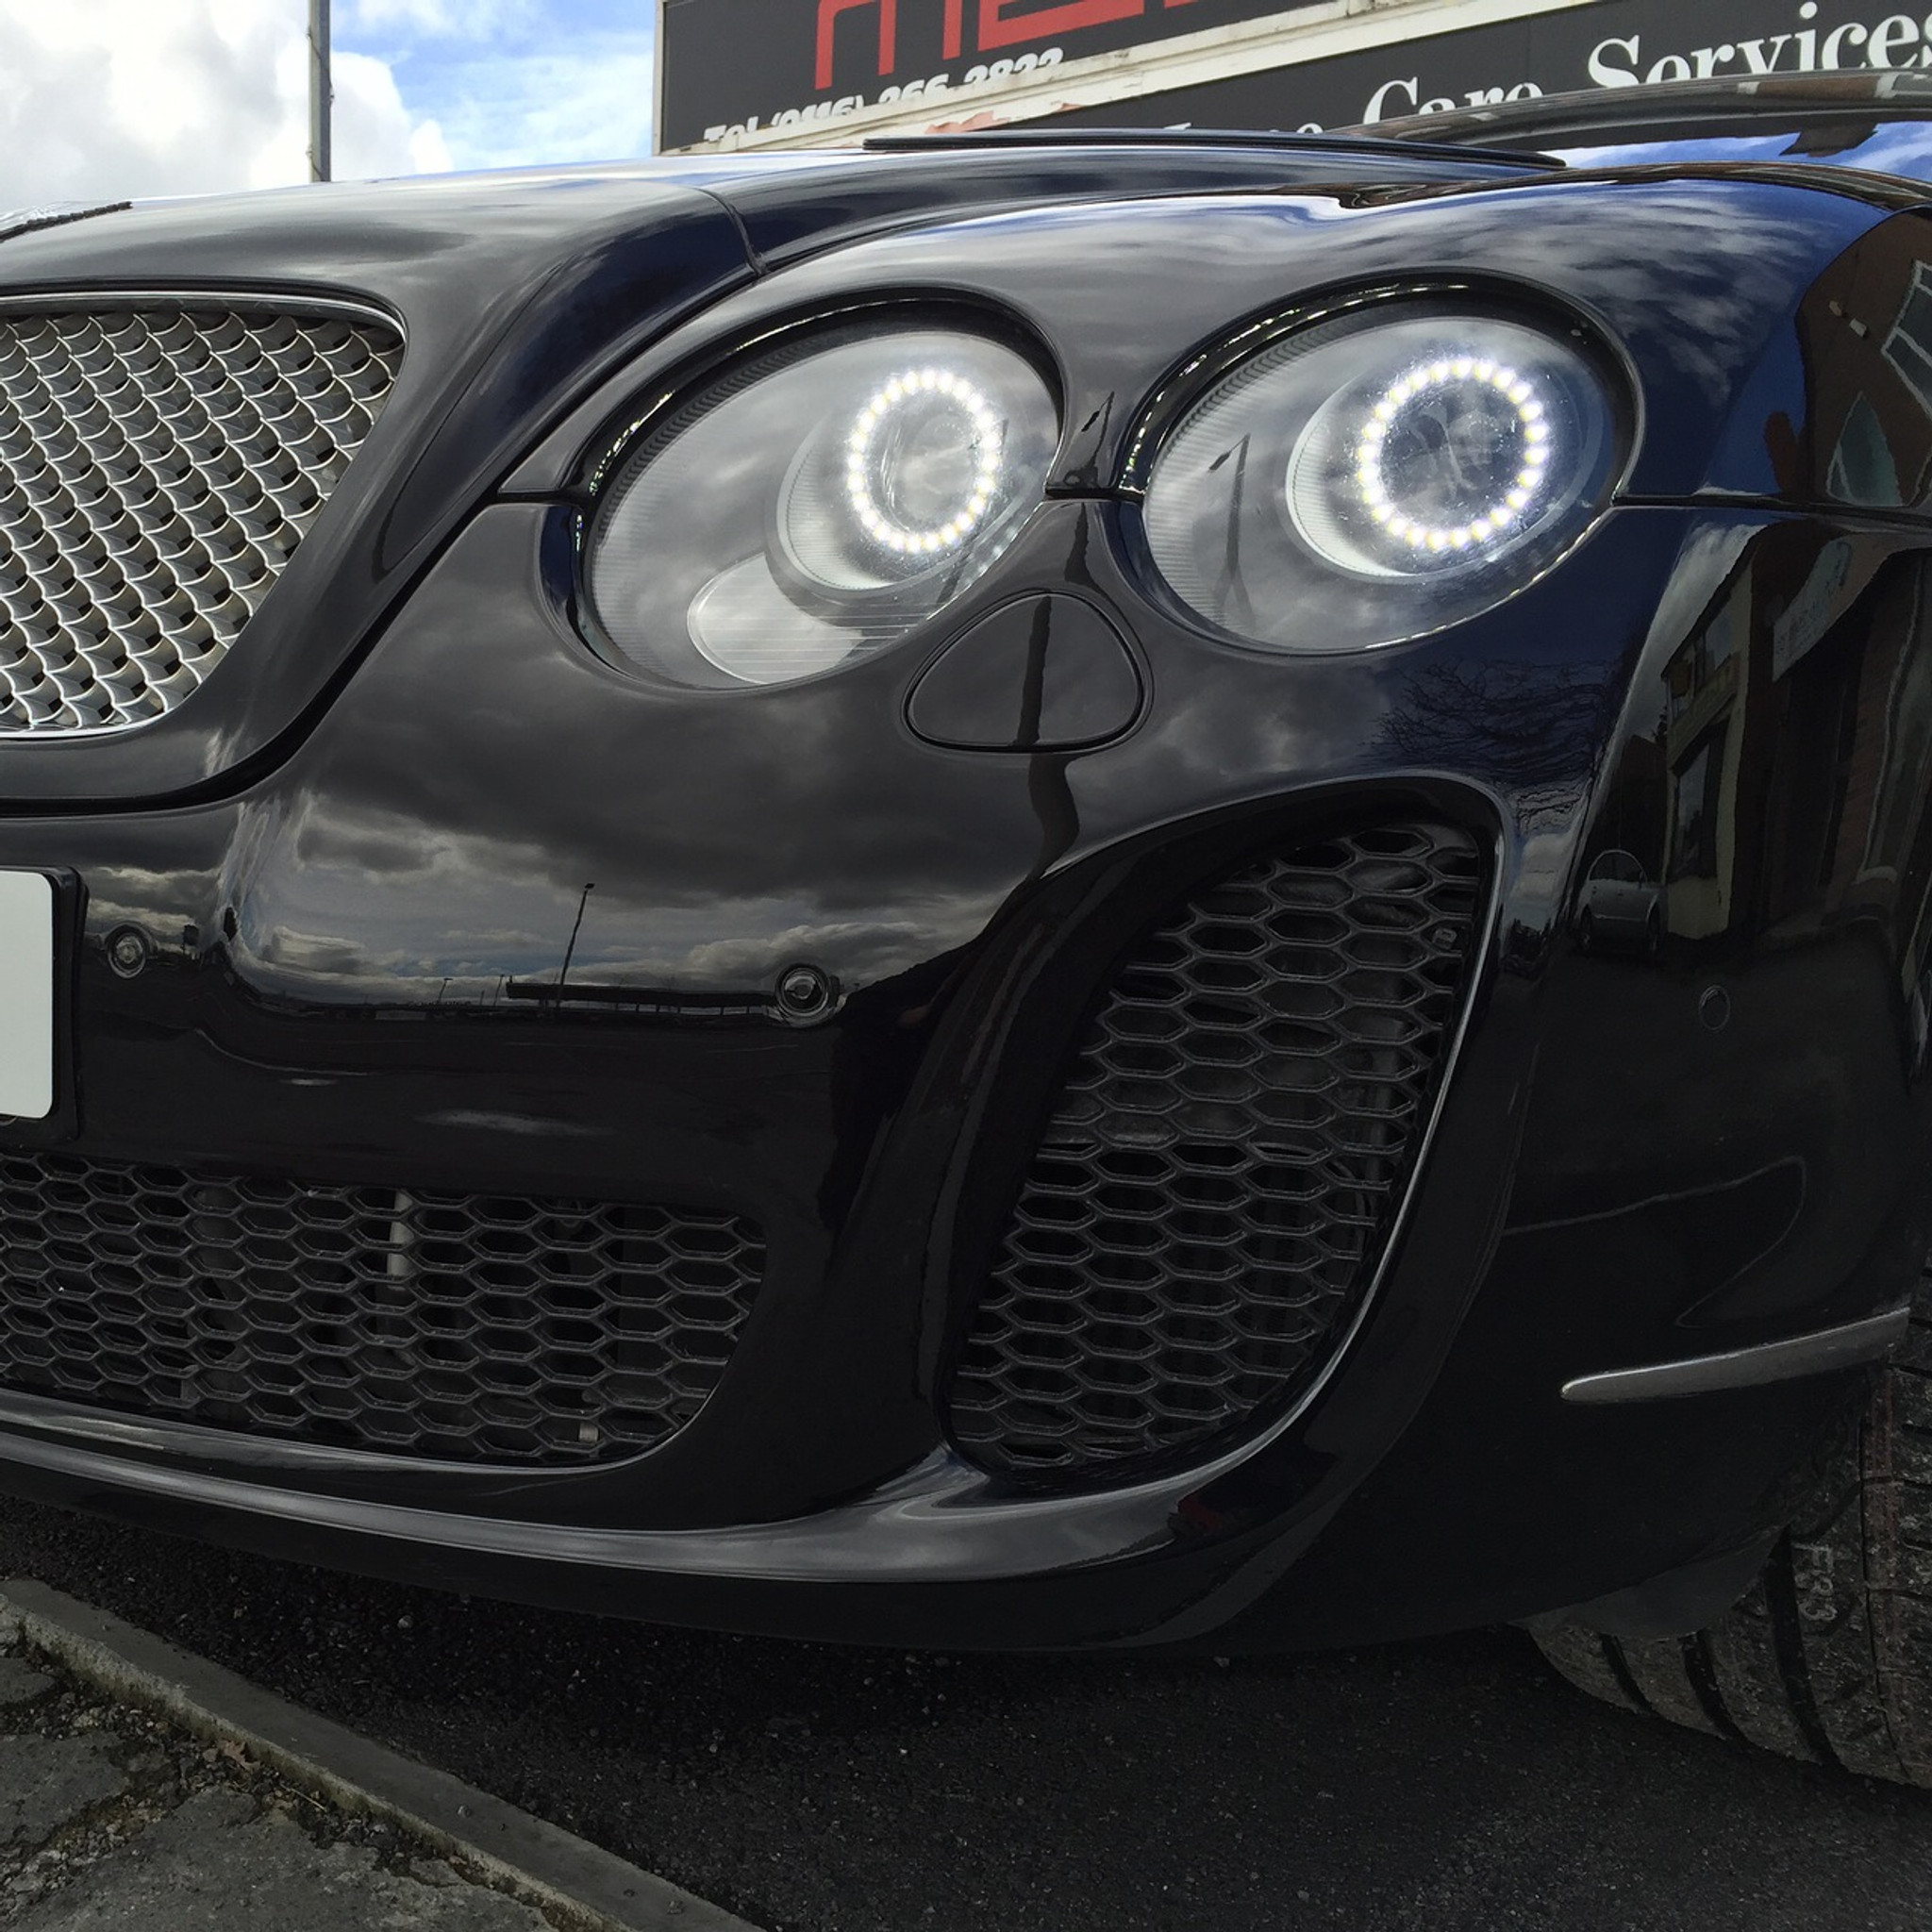 Bentley Continental Gt Gtc Headlight Upgrade To 2013 Spec Led